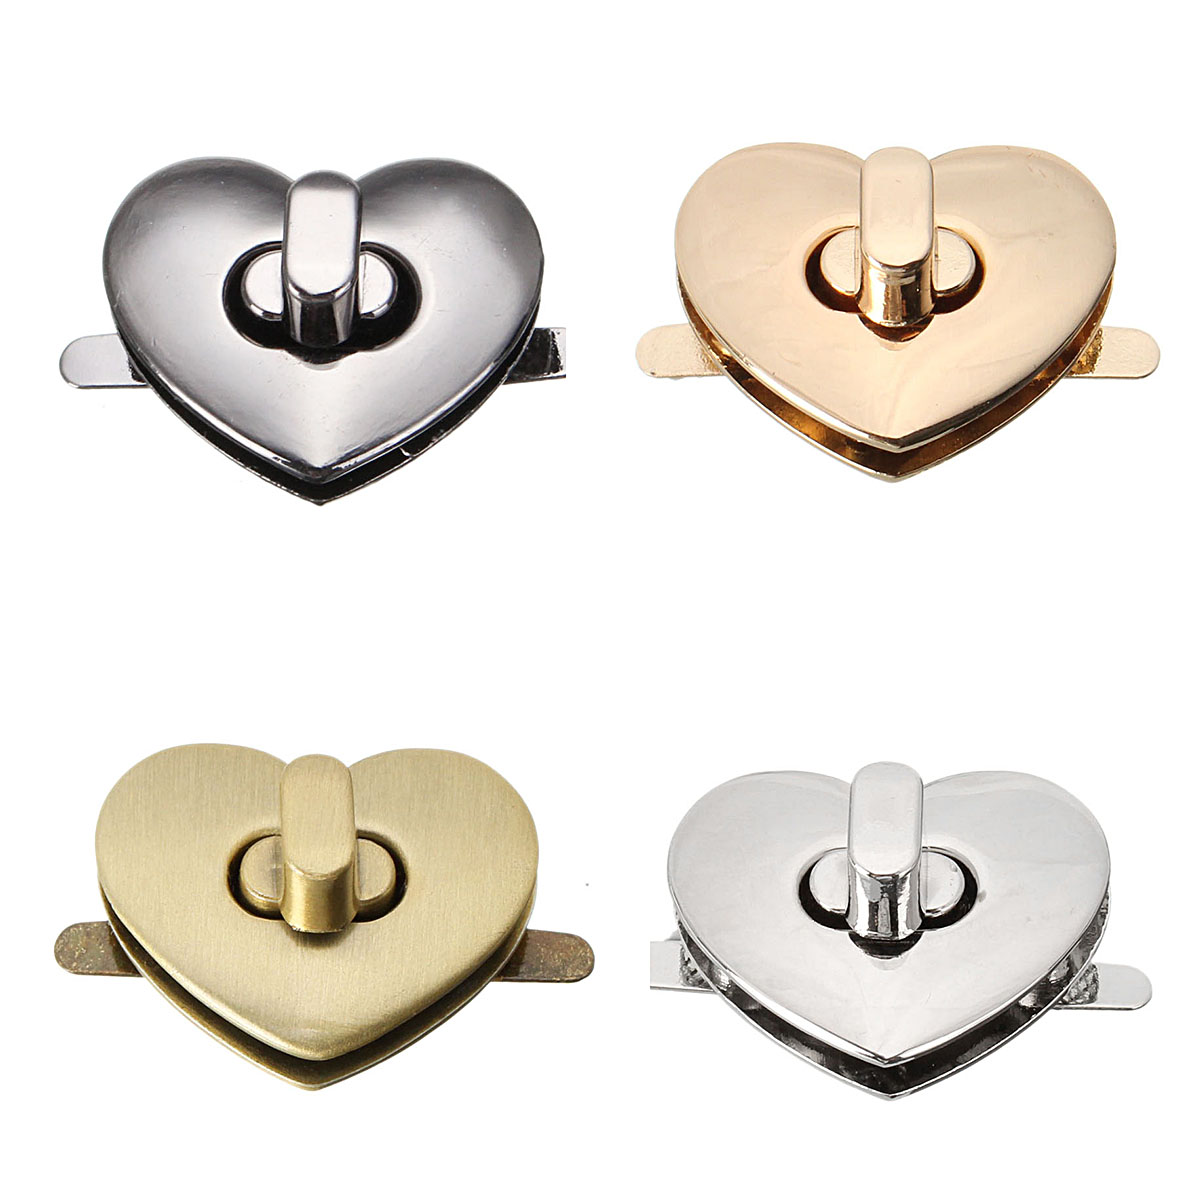 Osmond 32mm X 28mm Heart Shape Clasp Bronze Tone Trunk Lock Replacement Bag DIY Accessories Purse Snap Clasps/ Closure Locks osmond 37x25mm metal lock hardware cabinet boxes diy bag accessories latch catch toggle bags parts button clasp closure locks